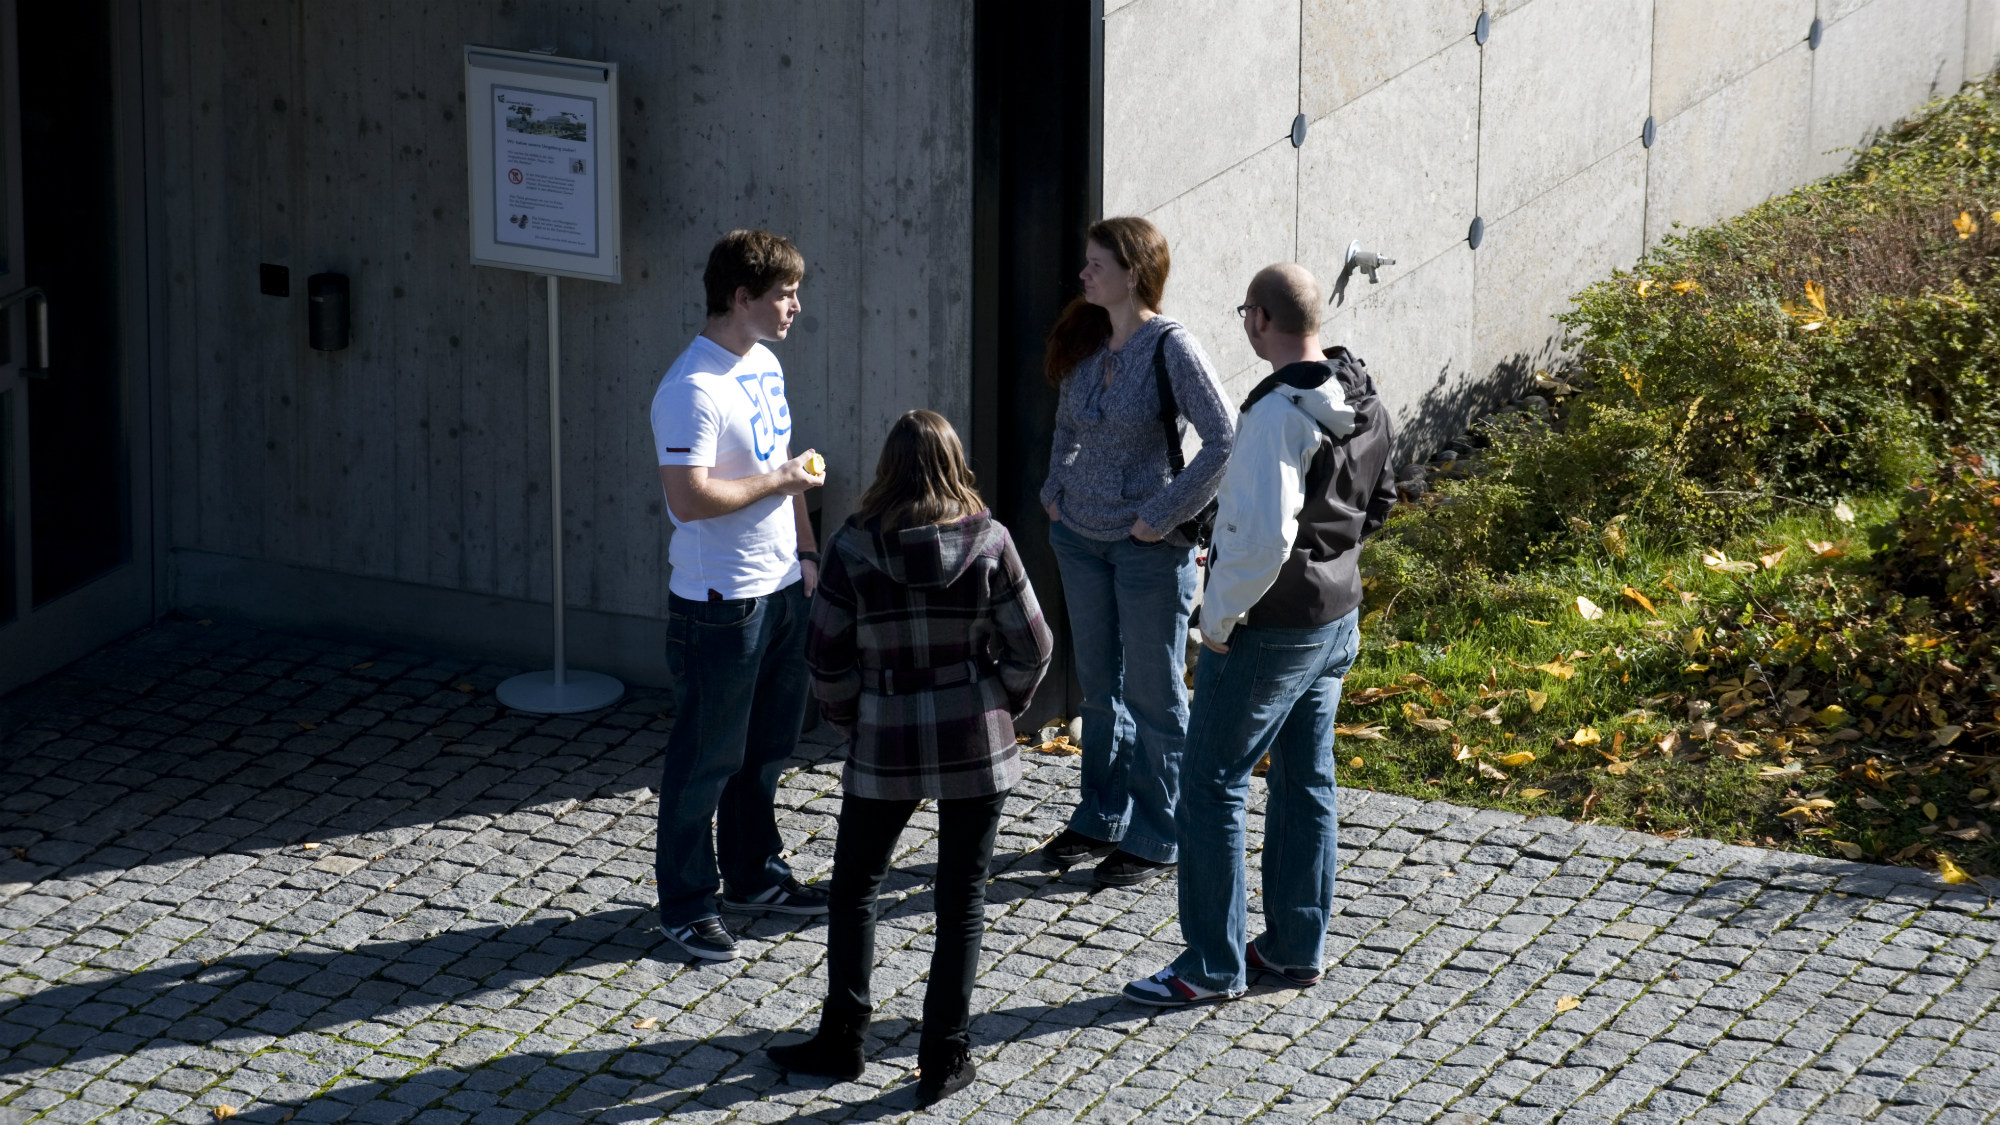 Students in front of the University of St.Gallen (HSG) library building